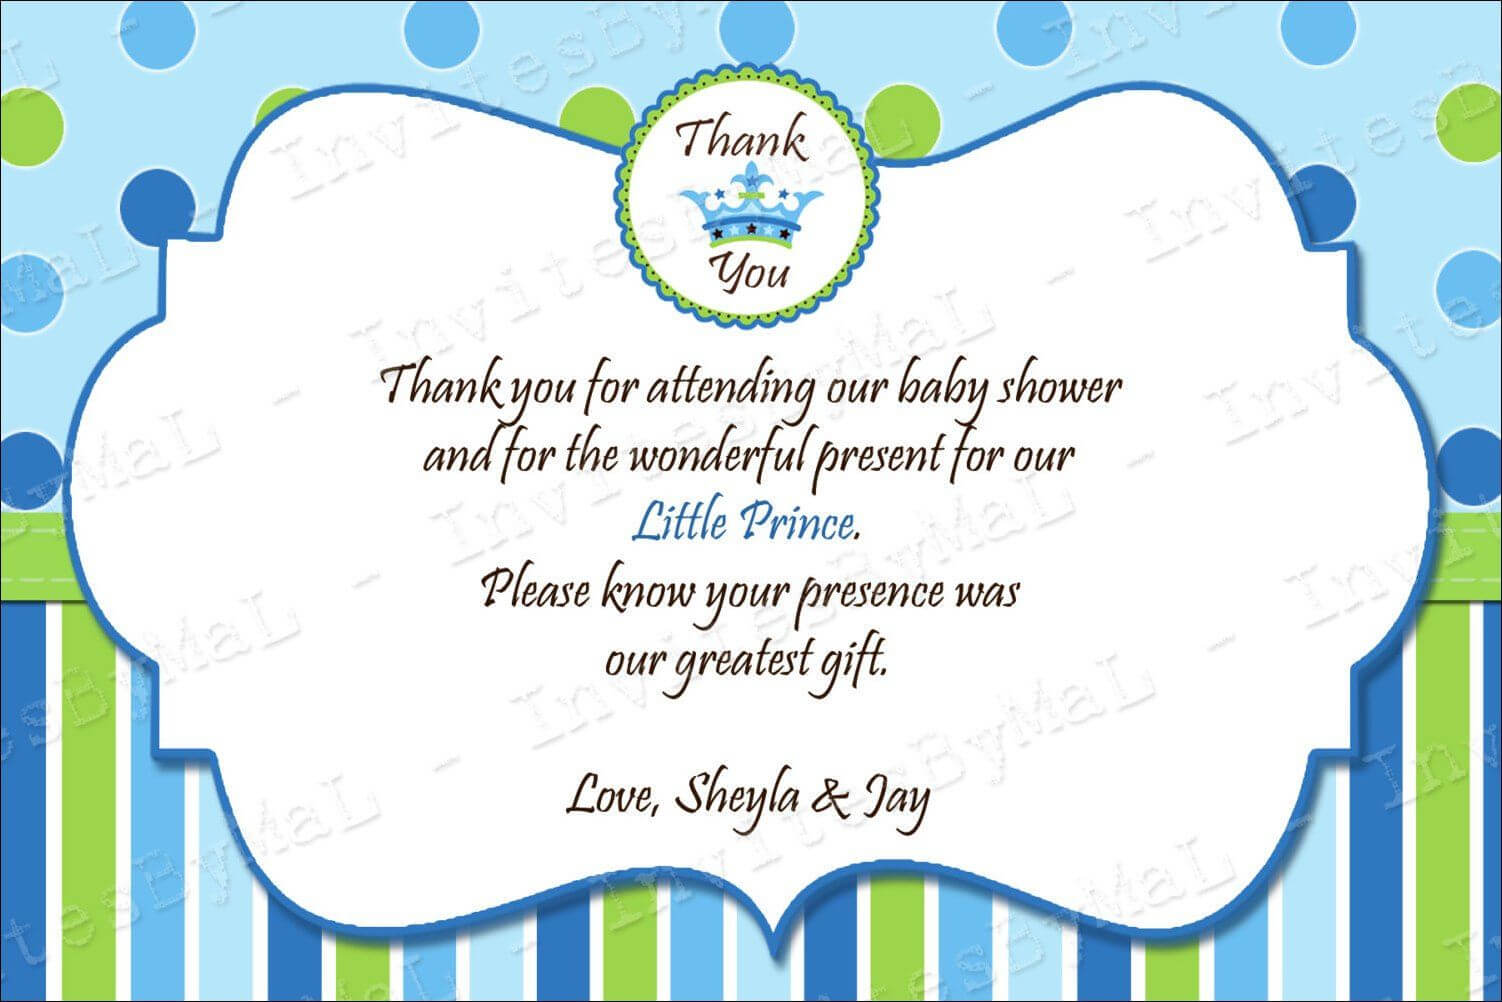 40 Beautiful Baby Shower Thank You Cards Ideas | Baby Shower Regarding Thank You Card Template For Baby Shower